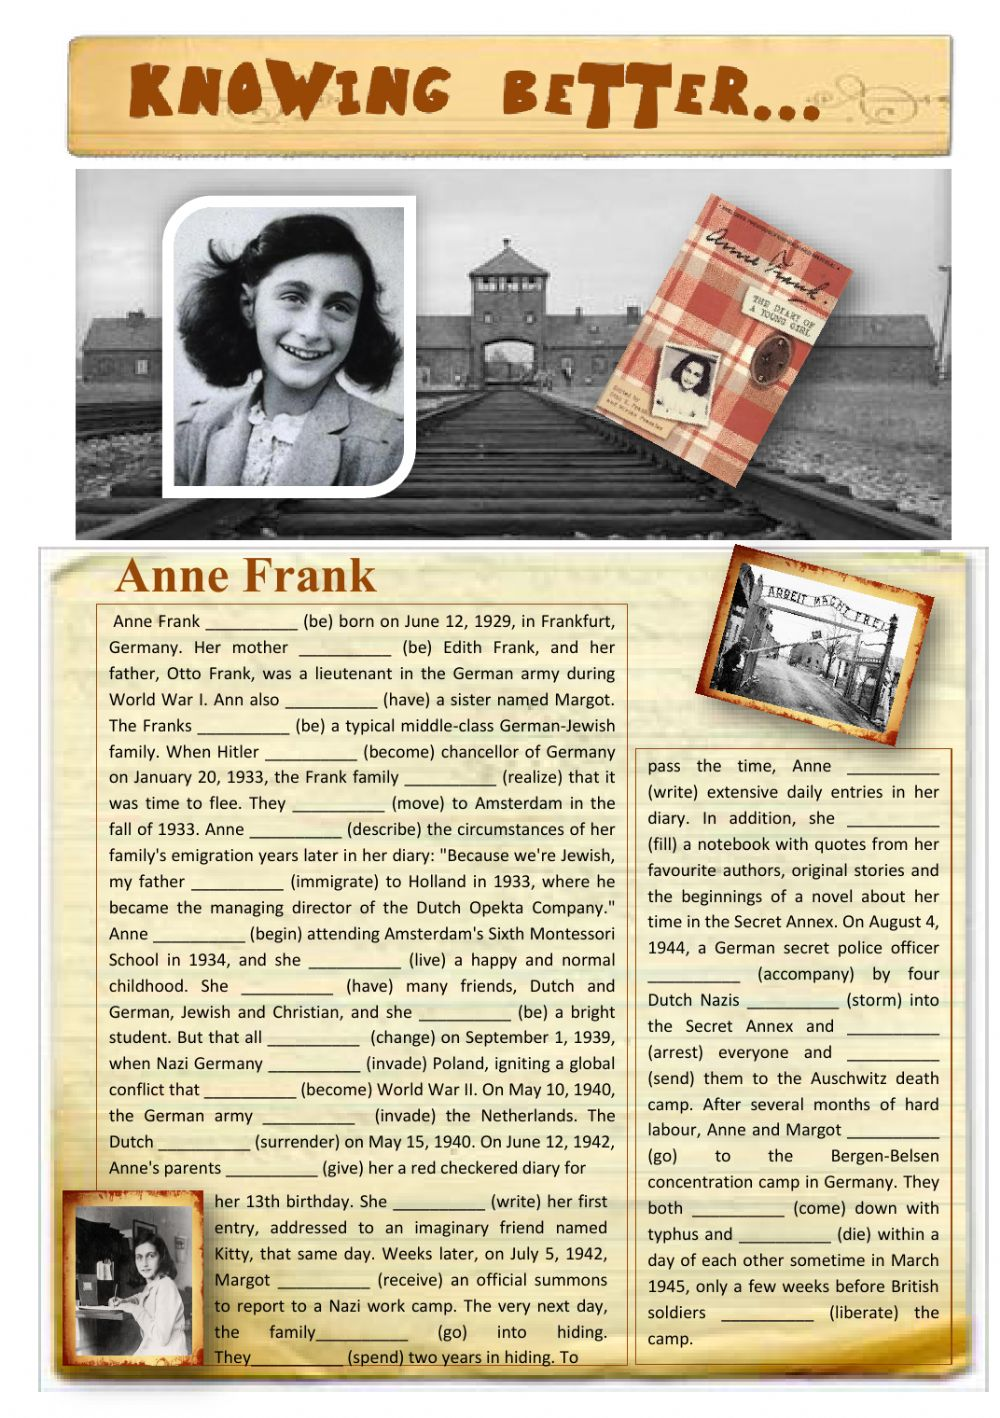 Worksheets Anne Frank Worksheets knowing better anne frank interactive worksheet text